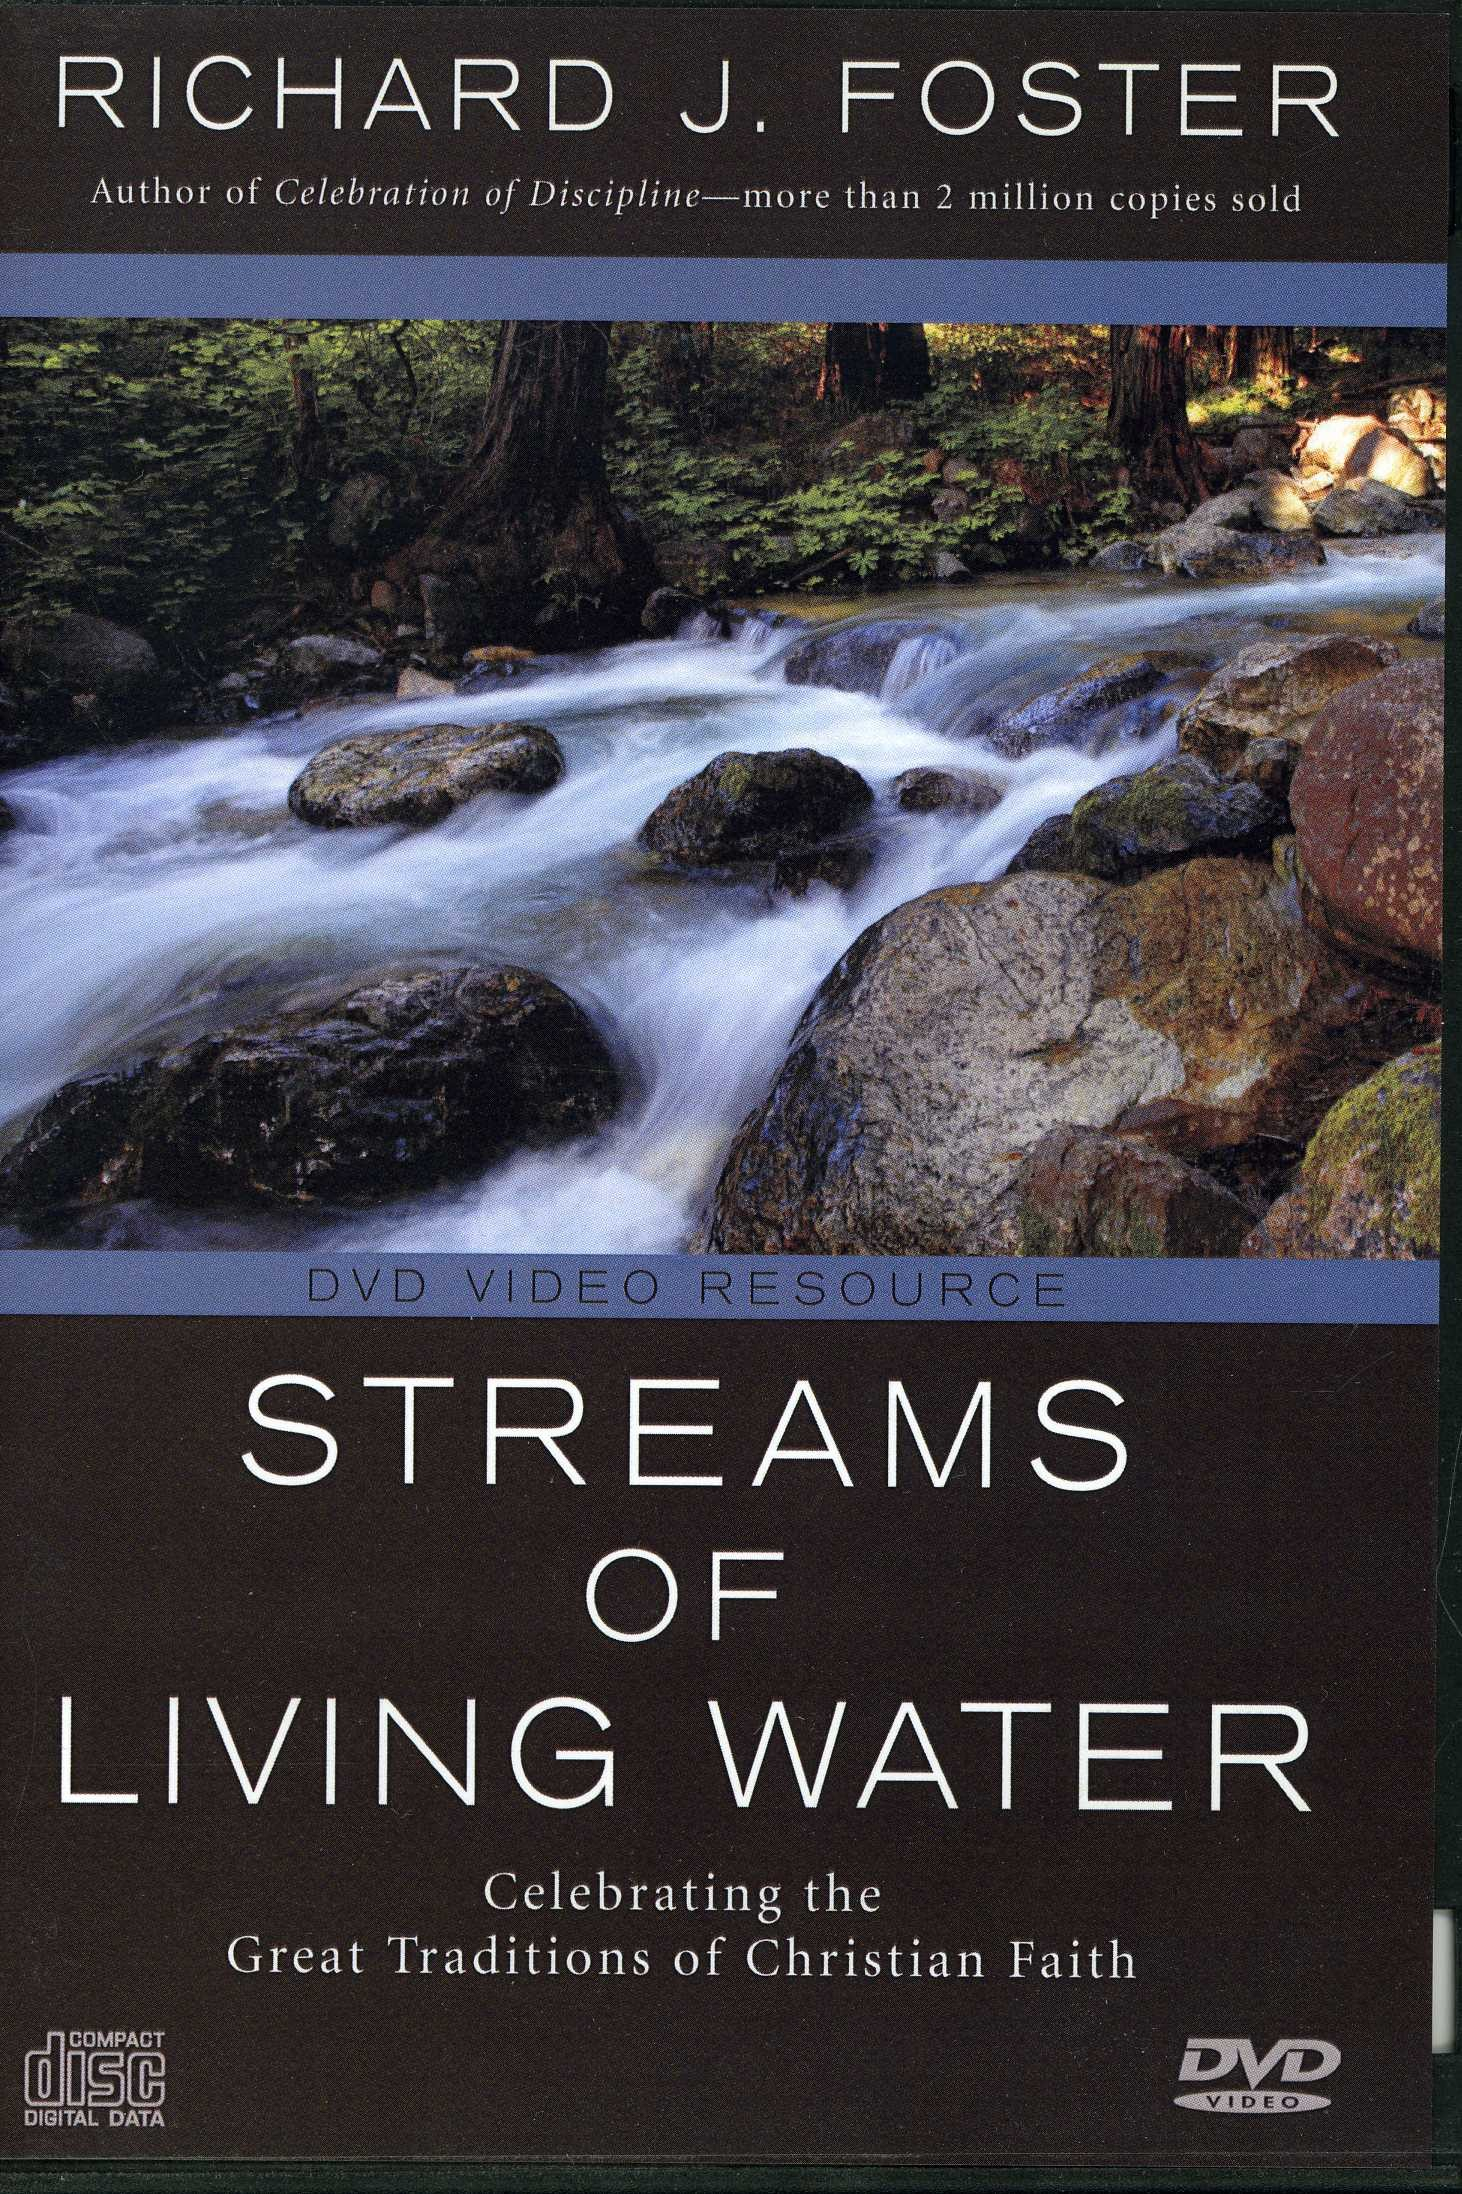 Streams of Living Water DVD Kit - Streams Of Living Water DVD Kit - Curriculum Of Christlikeness